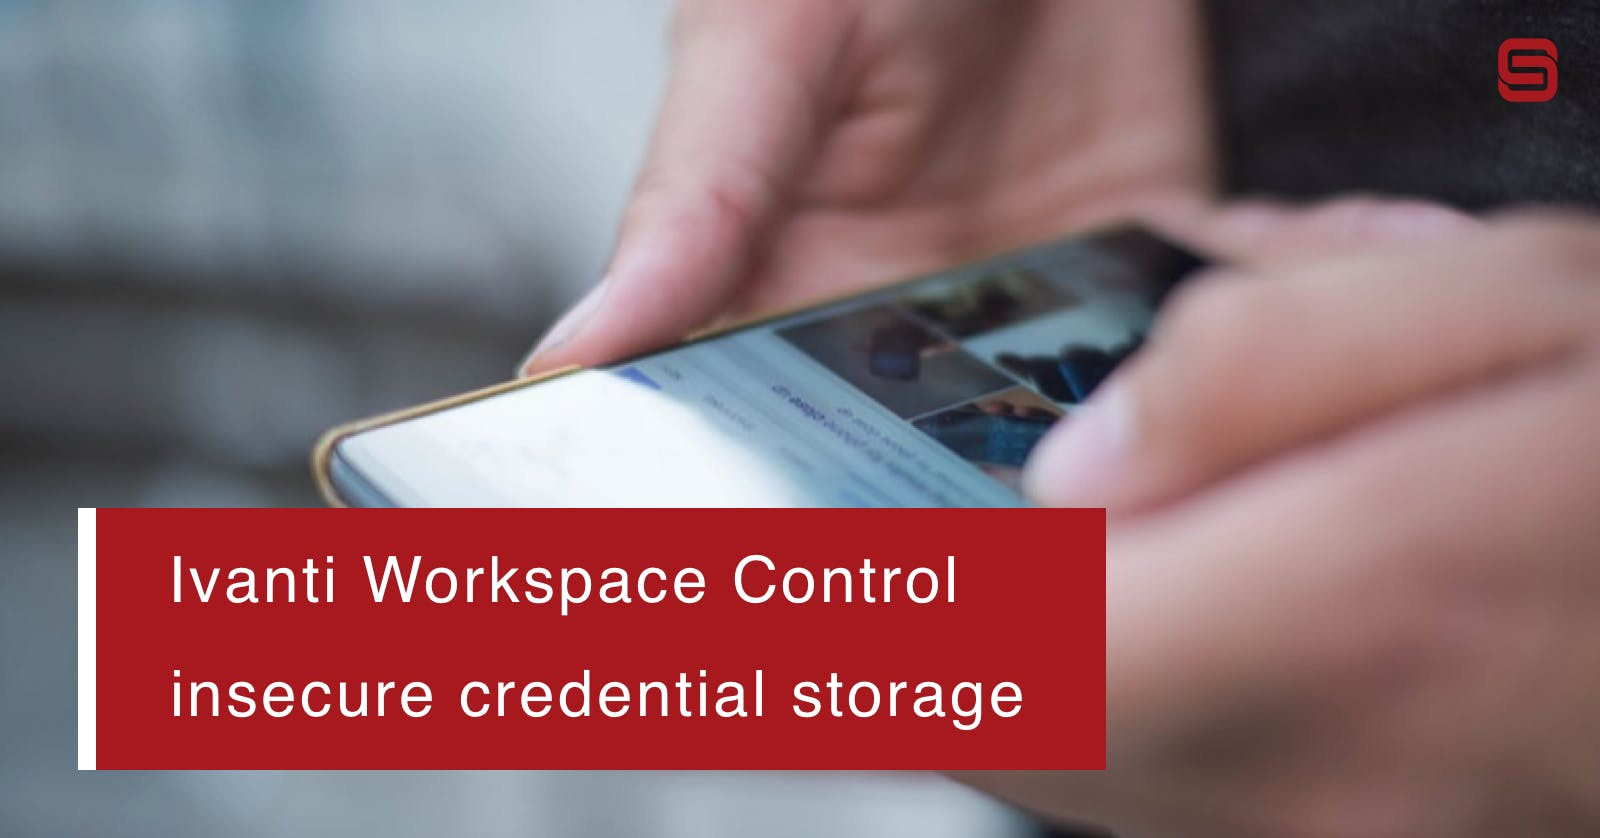 Stored credentials Ivanti Workspace Control can be retrieved from Registry